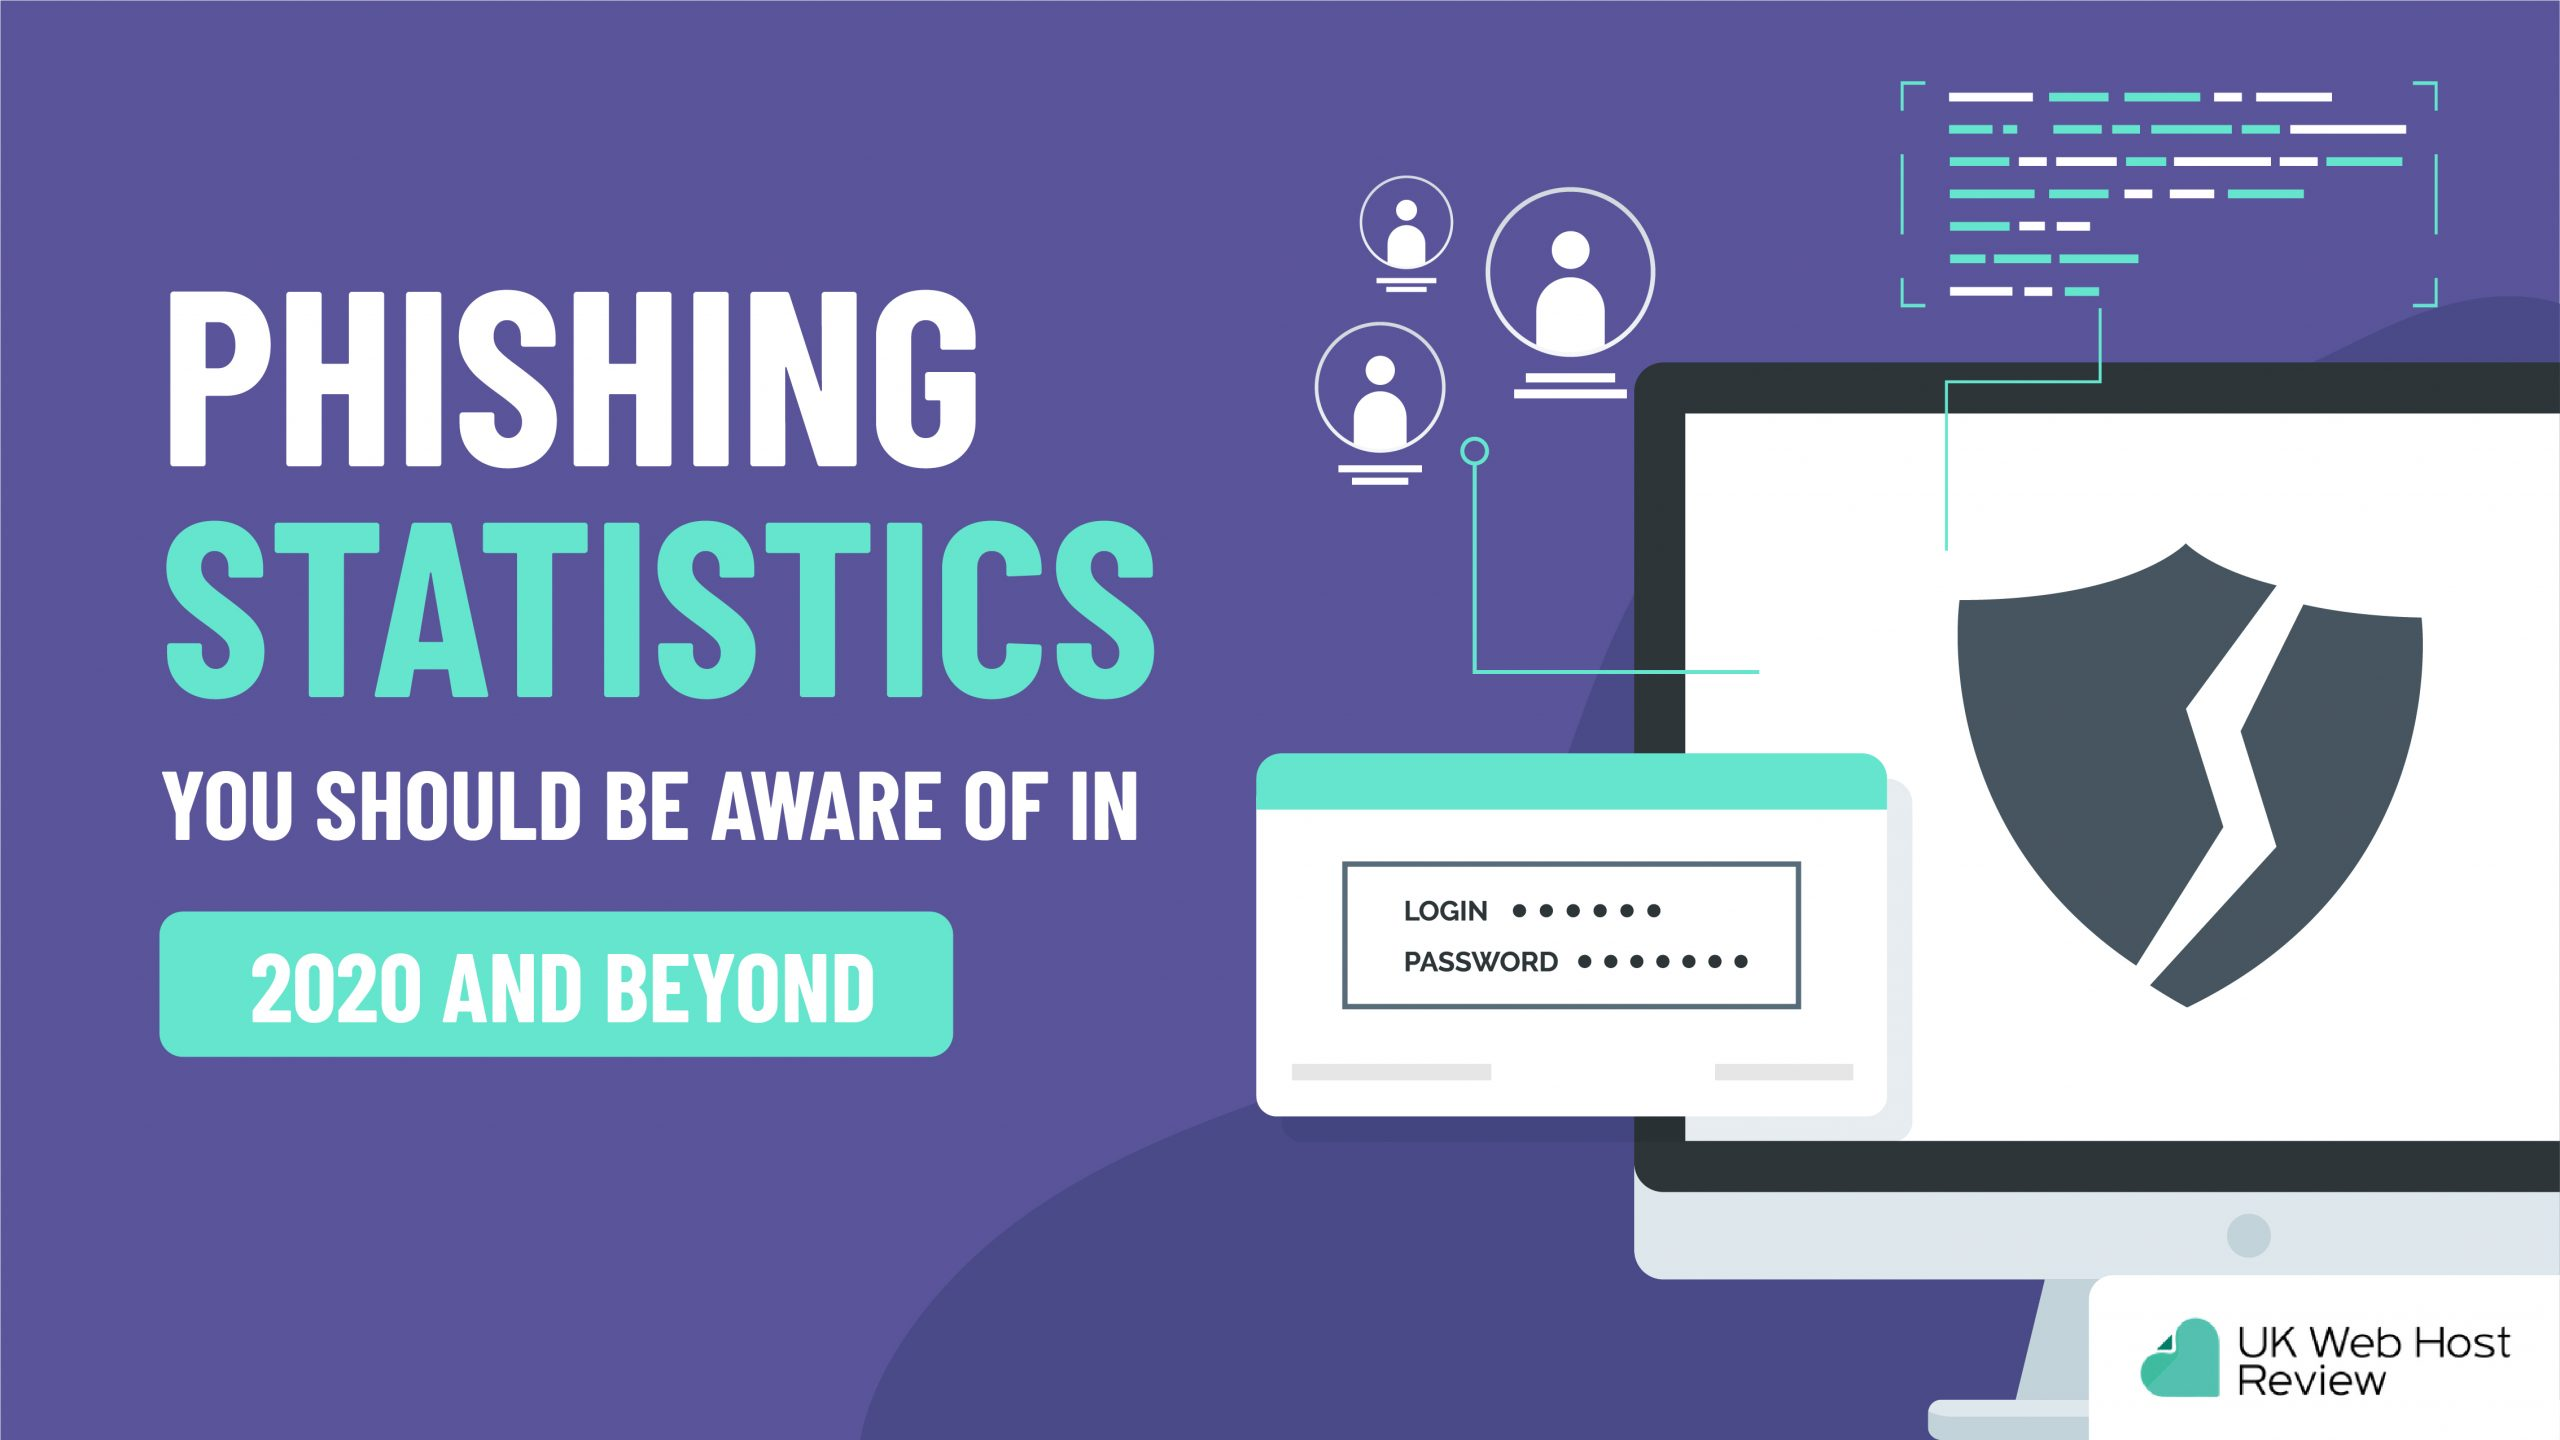 38 Phishing Statistics You Should be Aware of in 2021 and Beyond